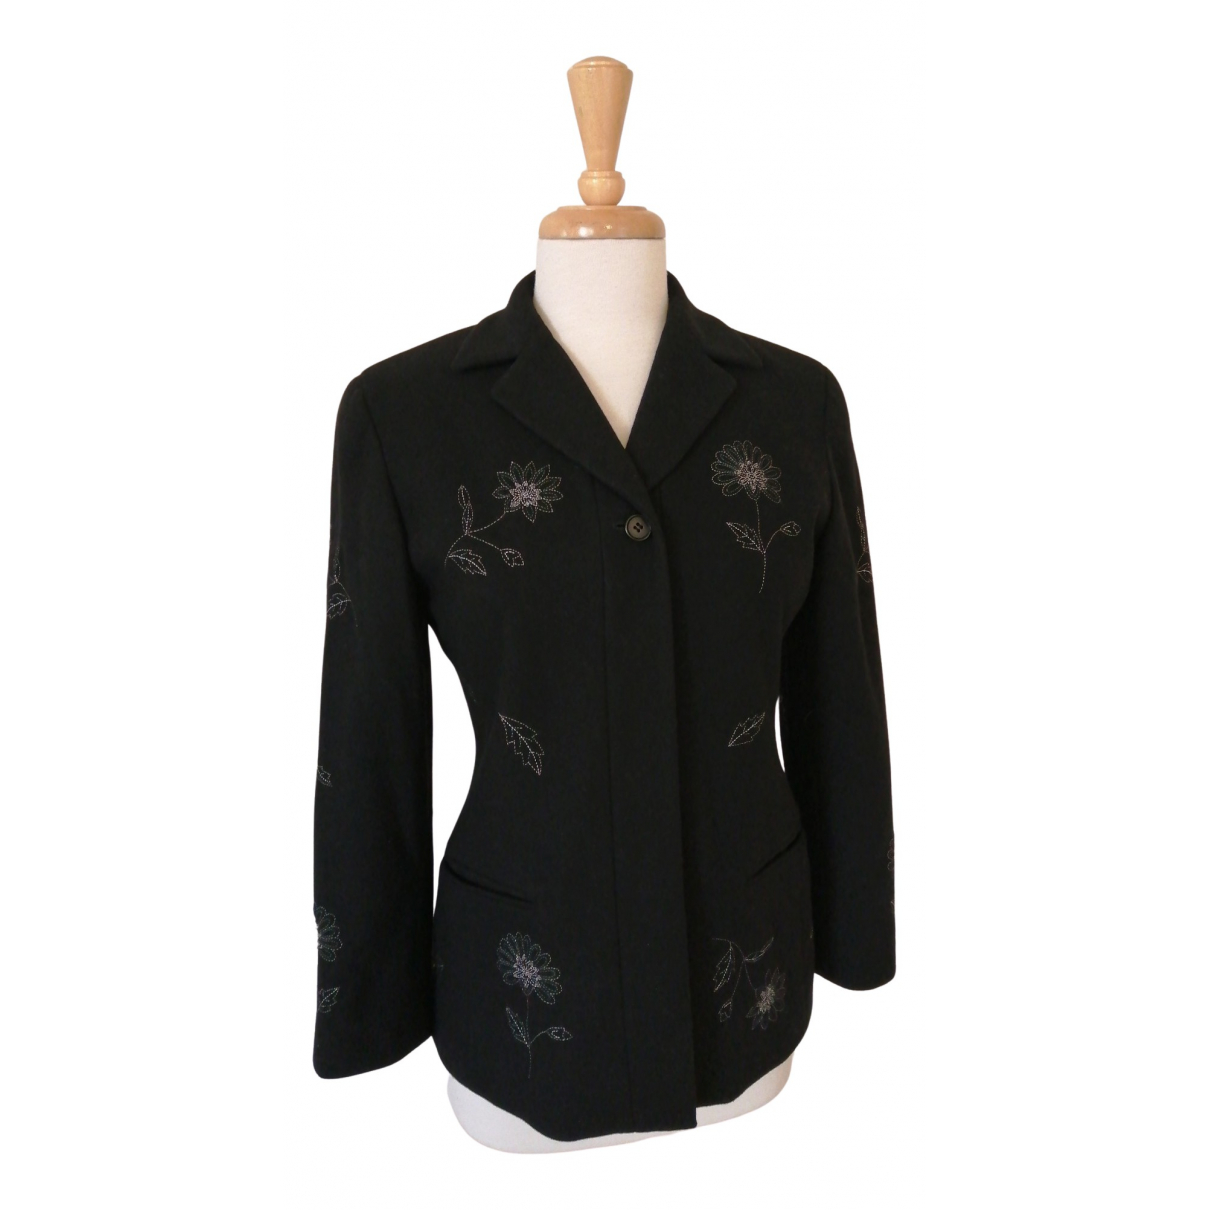 Emanuel Ungaro N Black Wool jacket for Women 38 FR